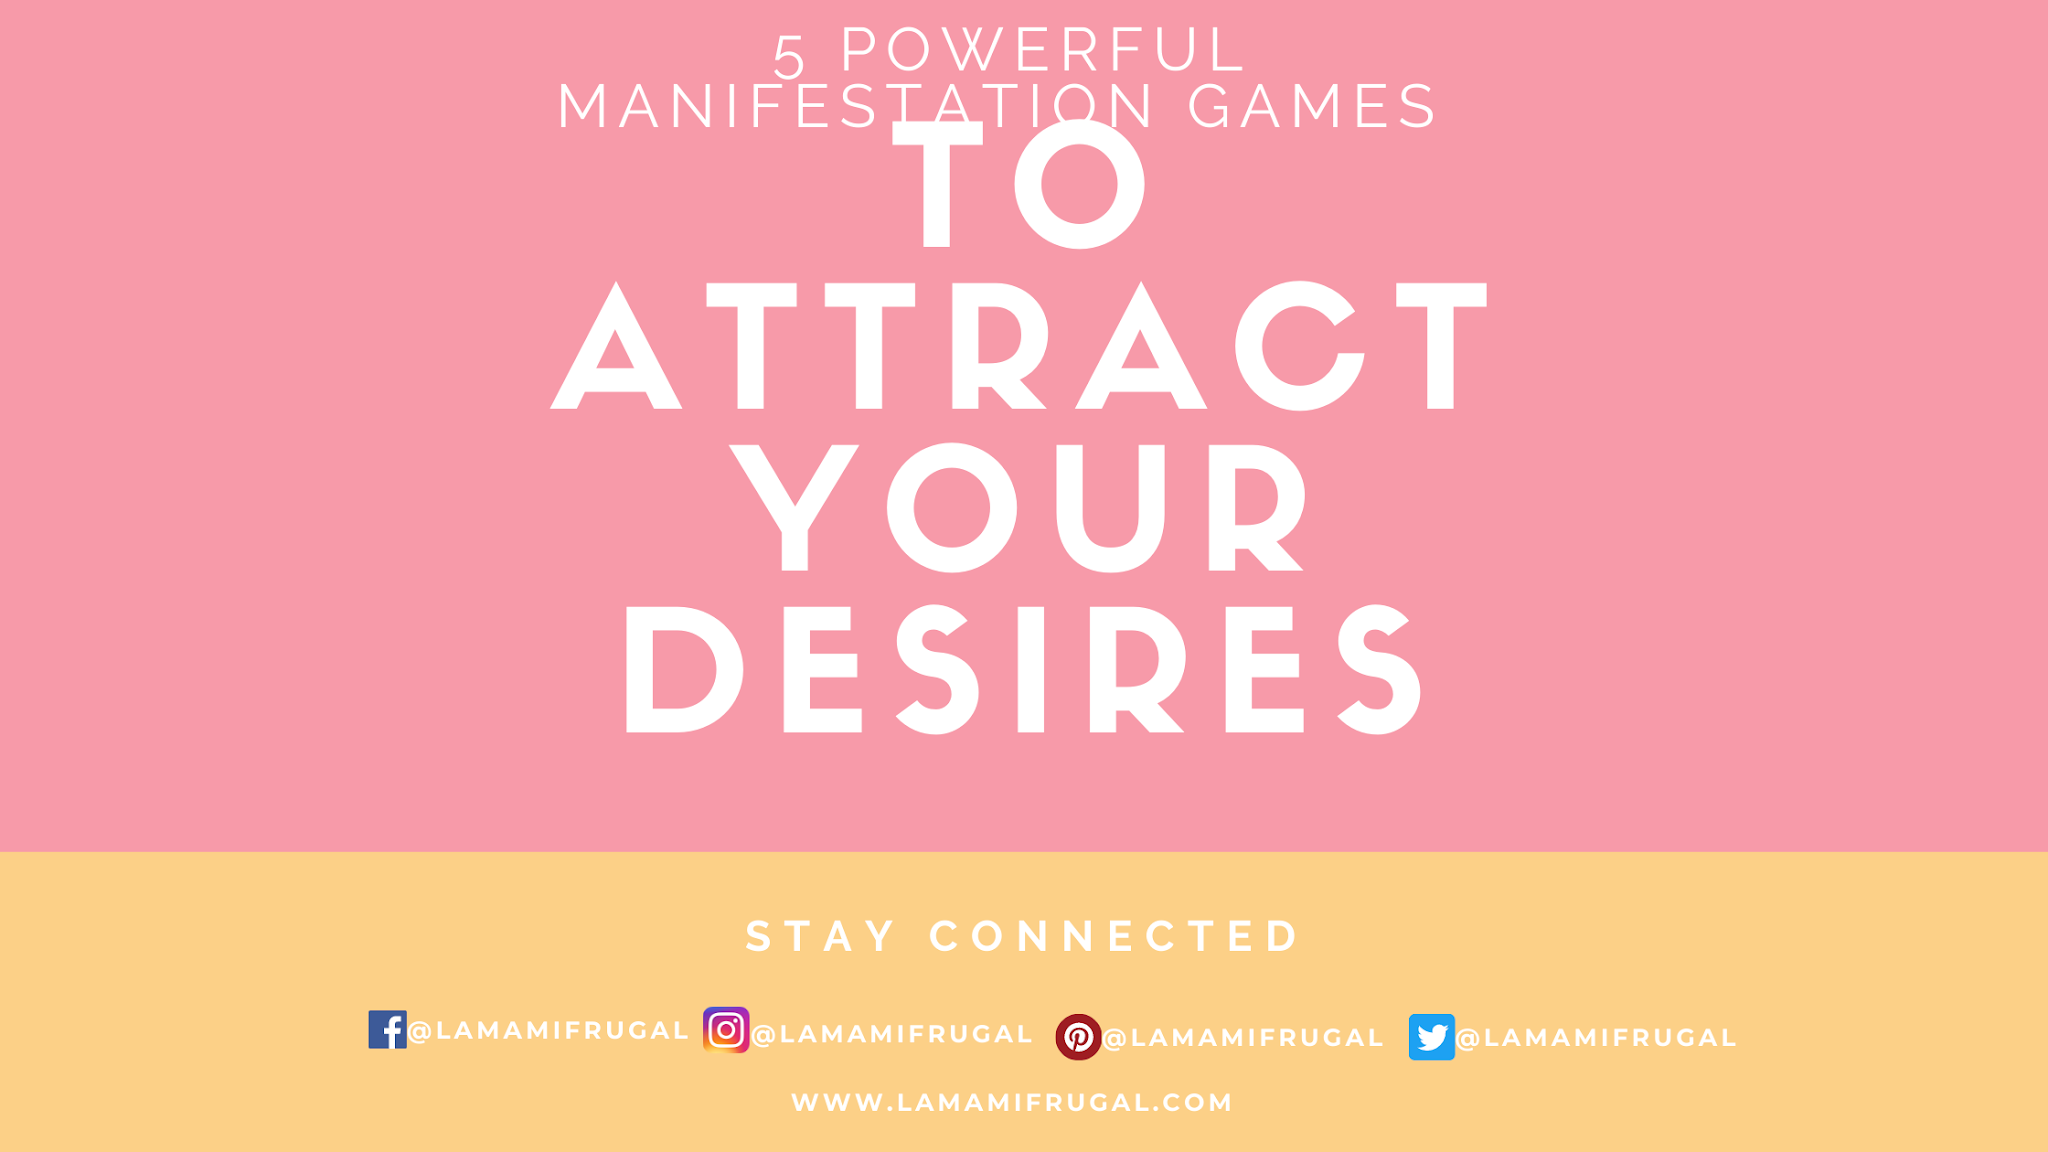 5 Powerful Manifestation Games To Attract Your Desires